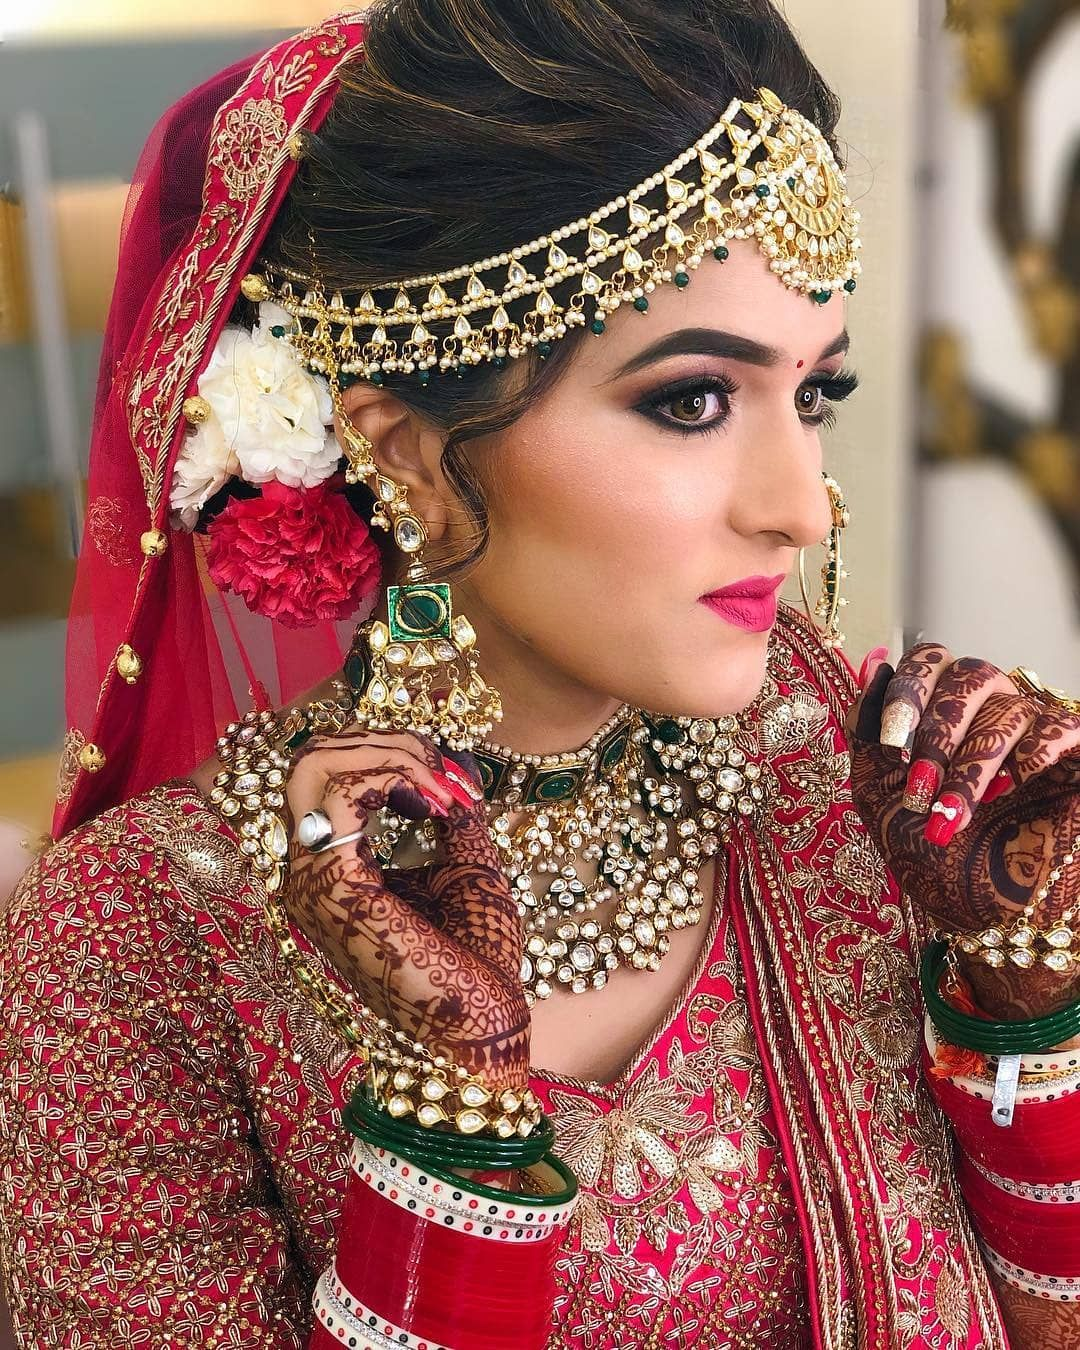 Beautiful Bride Bridal Hairstyle Indian Wedding Indian Bridal Indian Bride Outfits